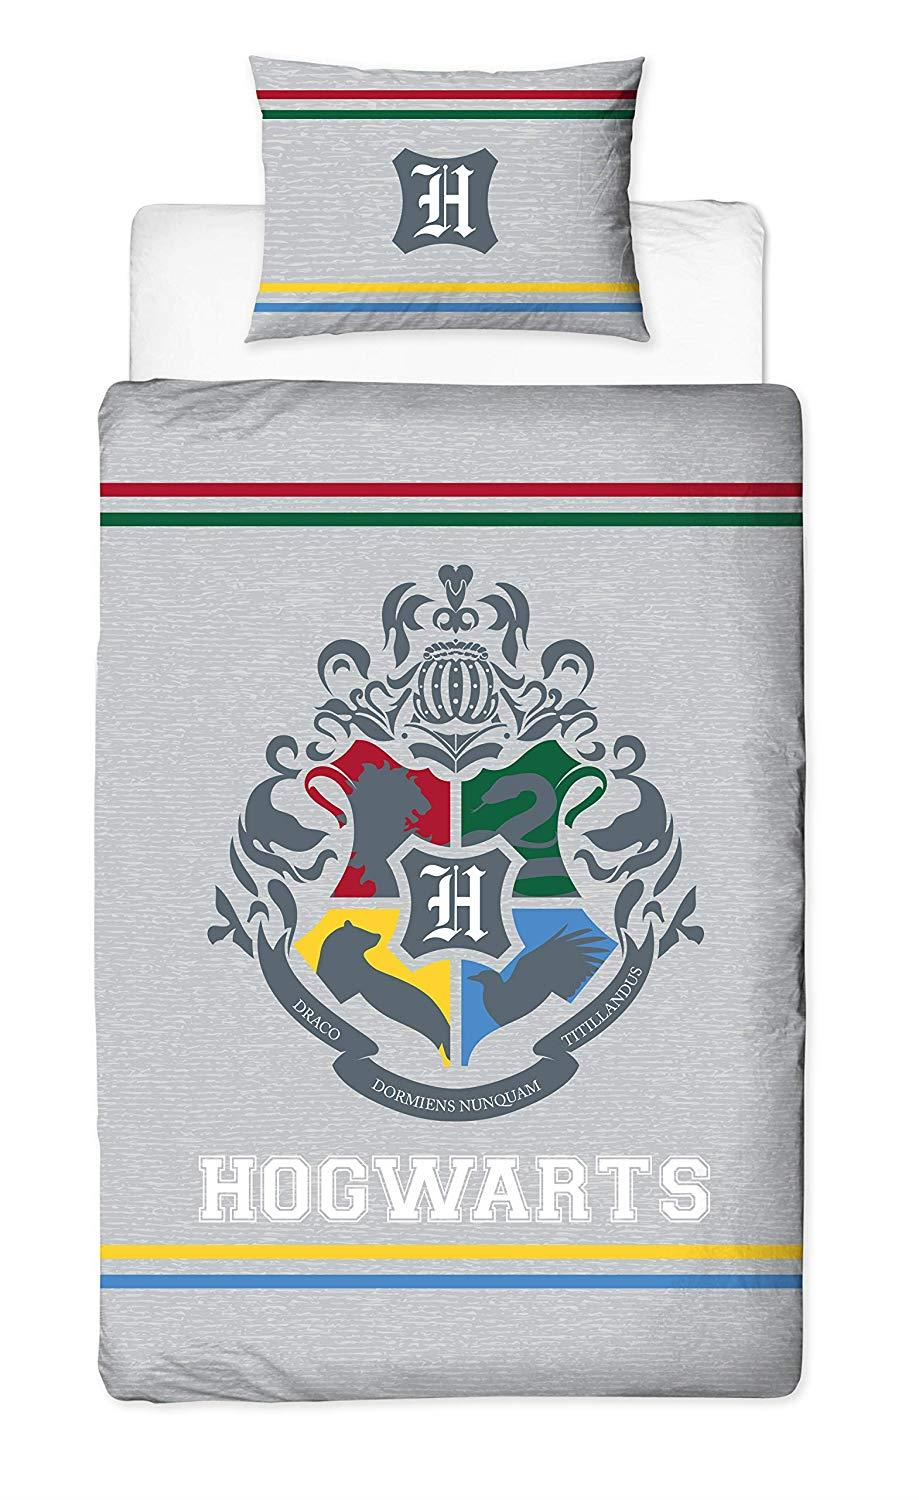 Official-Harry-Potter-Licensed-Duvet-Covers-Single-Double-Muggles-Hogwarts-Charm thumbnail 8